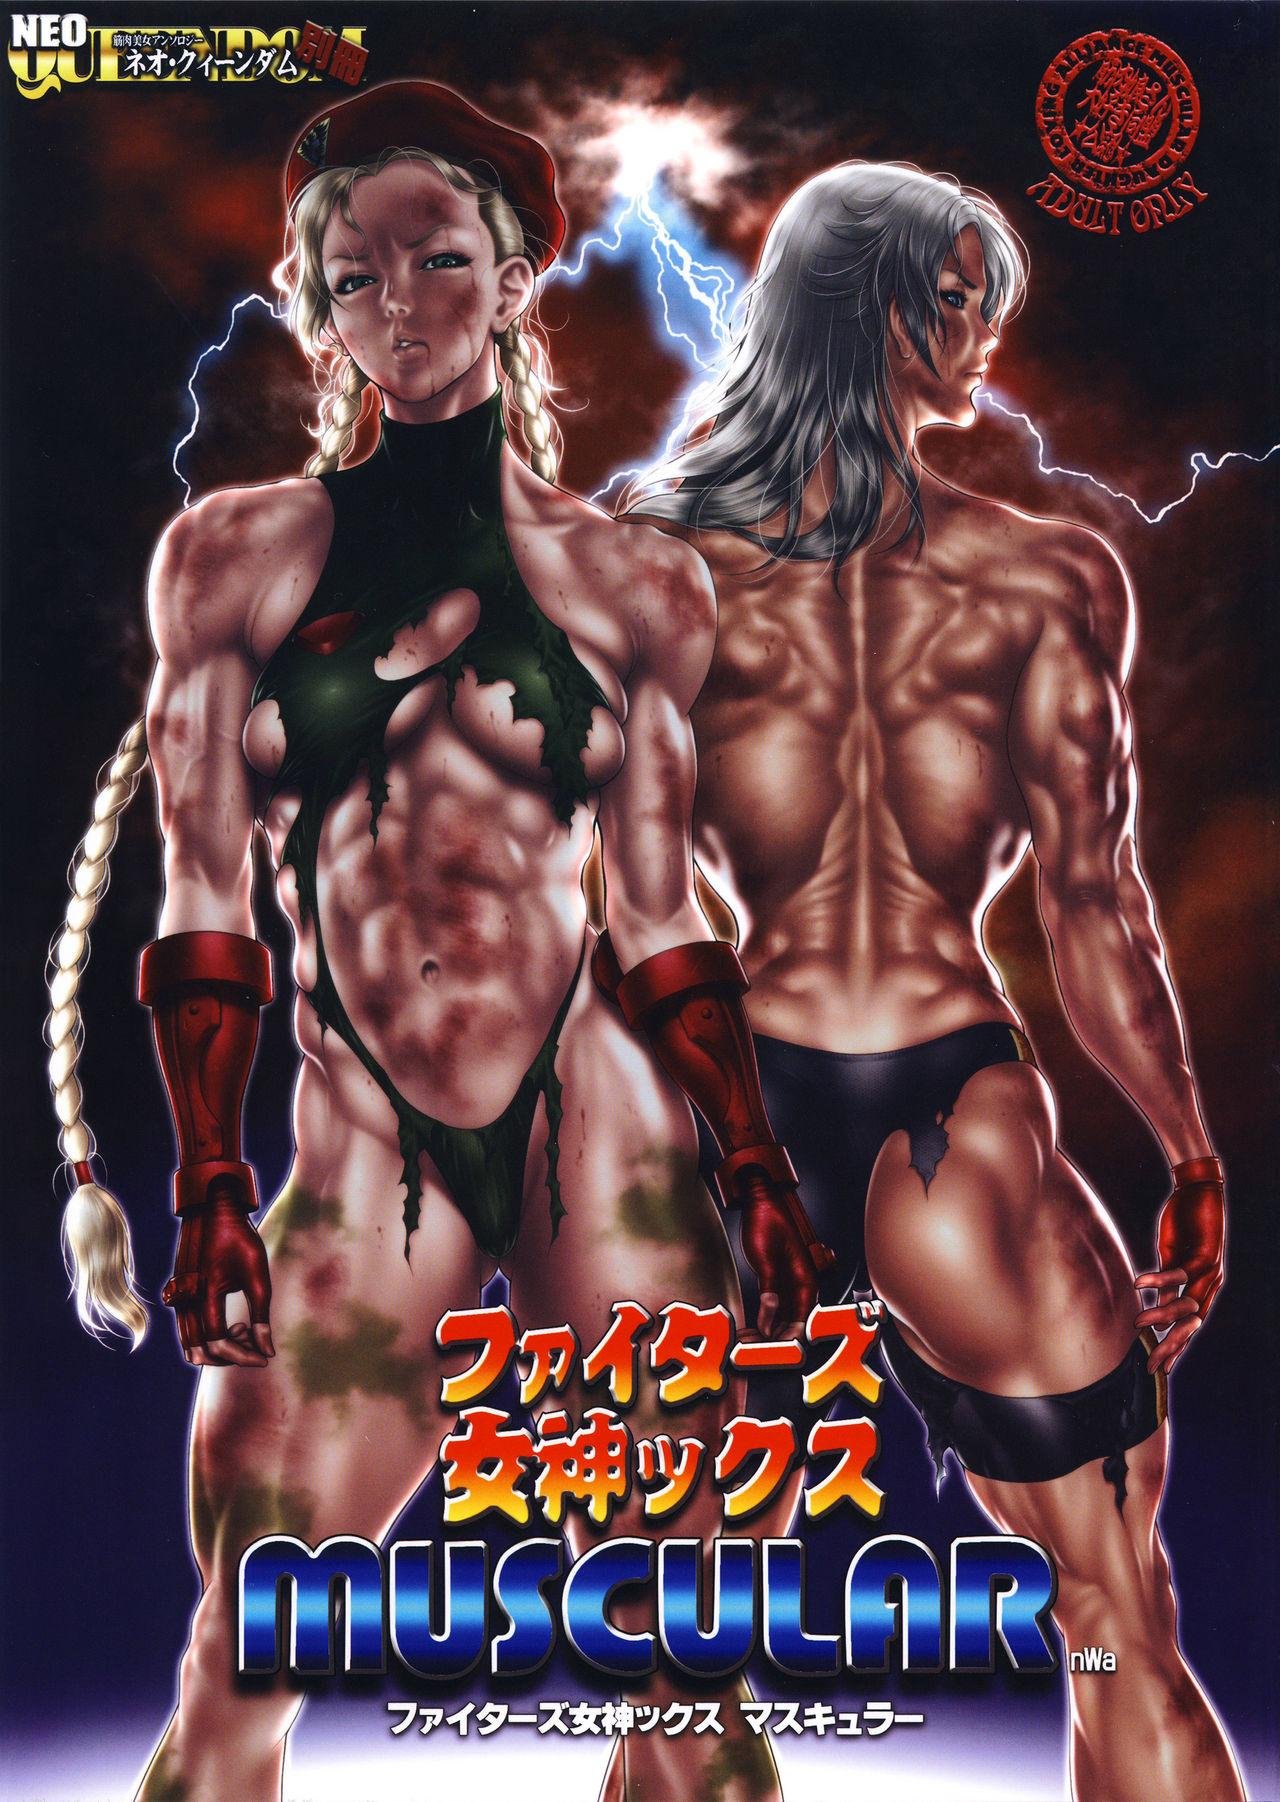 Fighters Megamix MUSCULAR 0